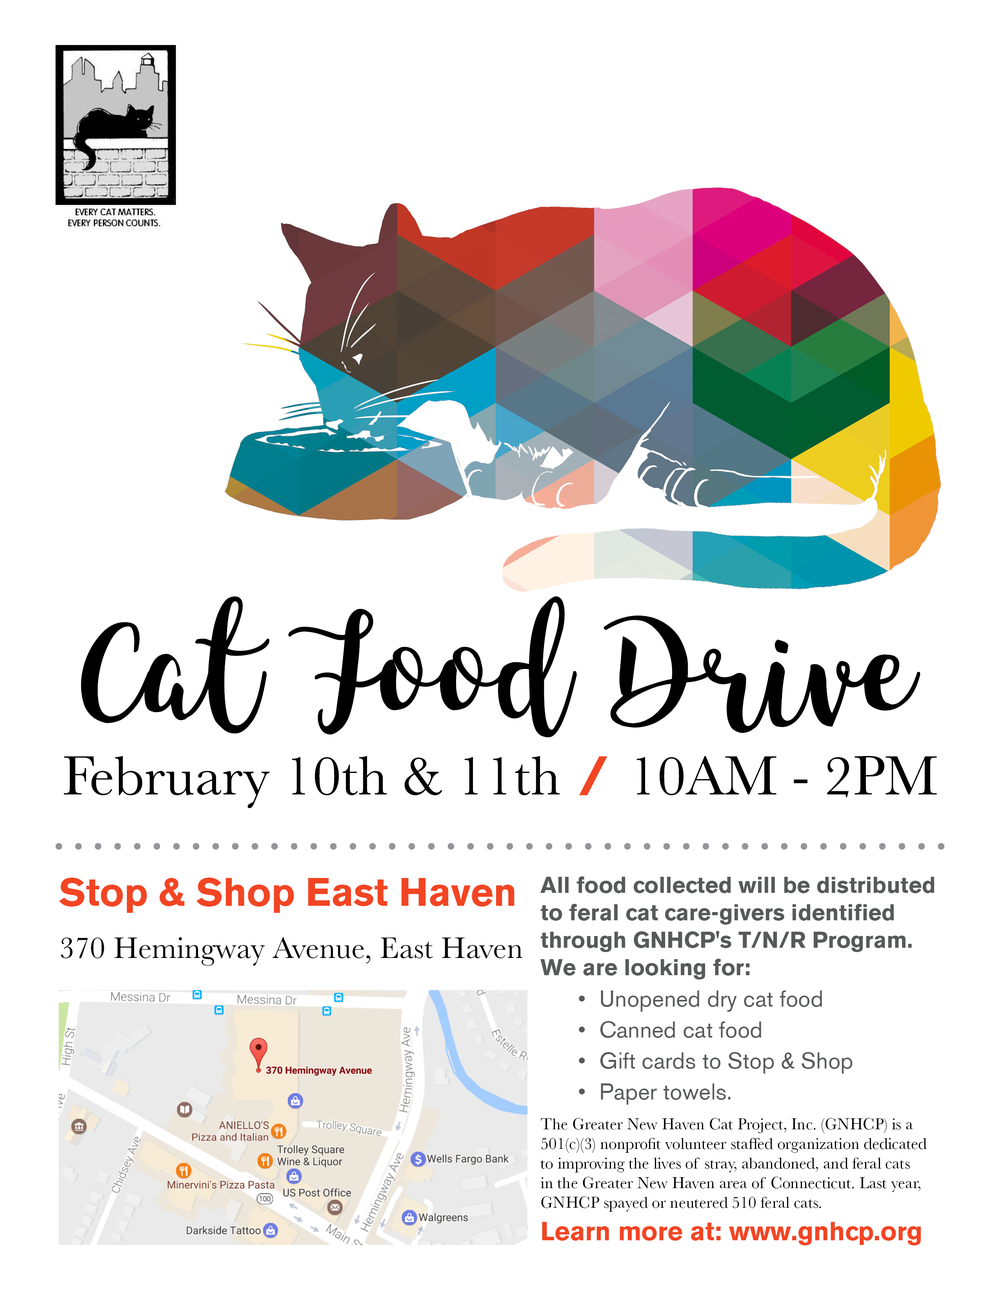 Catfooddrive_Feb10-11.png